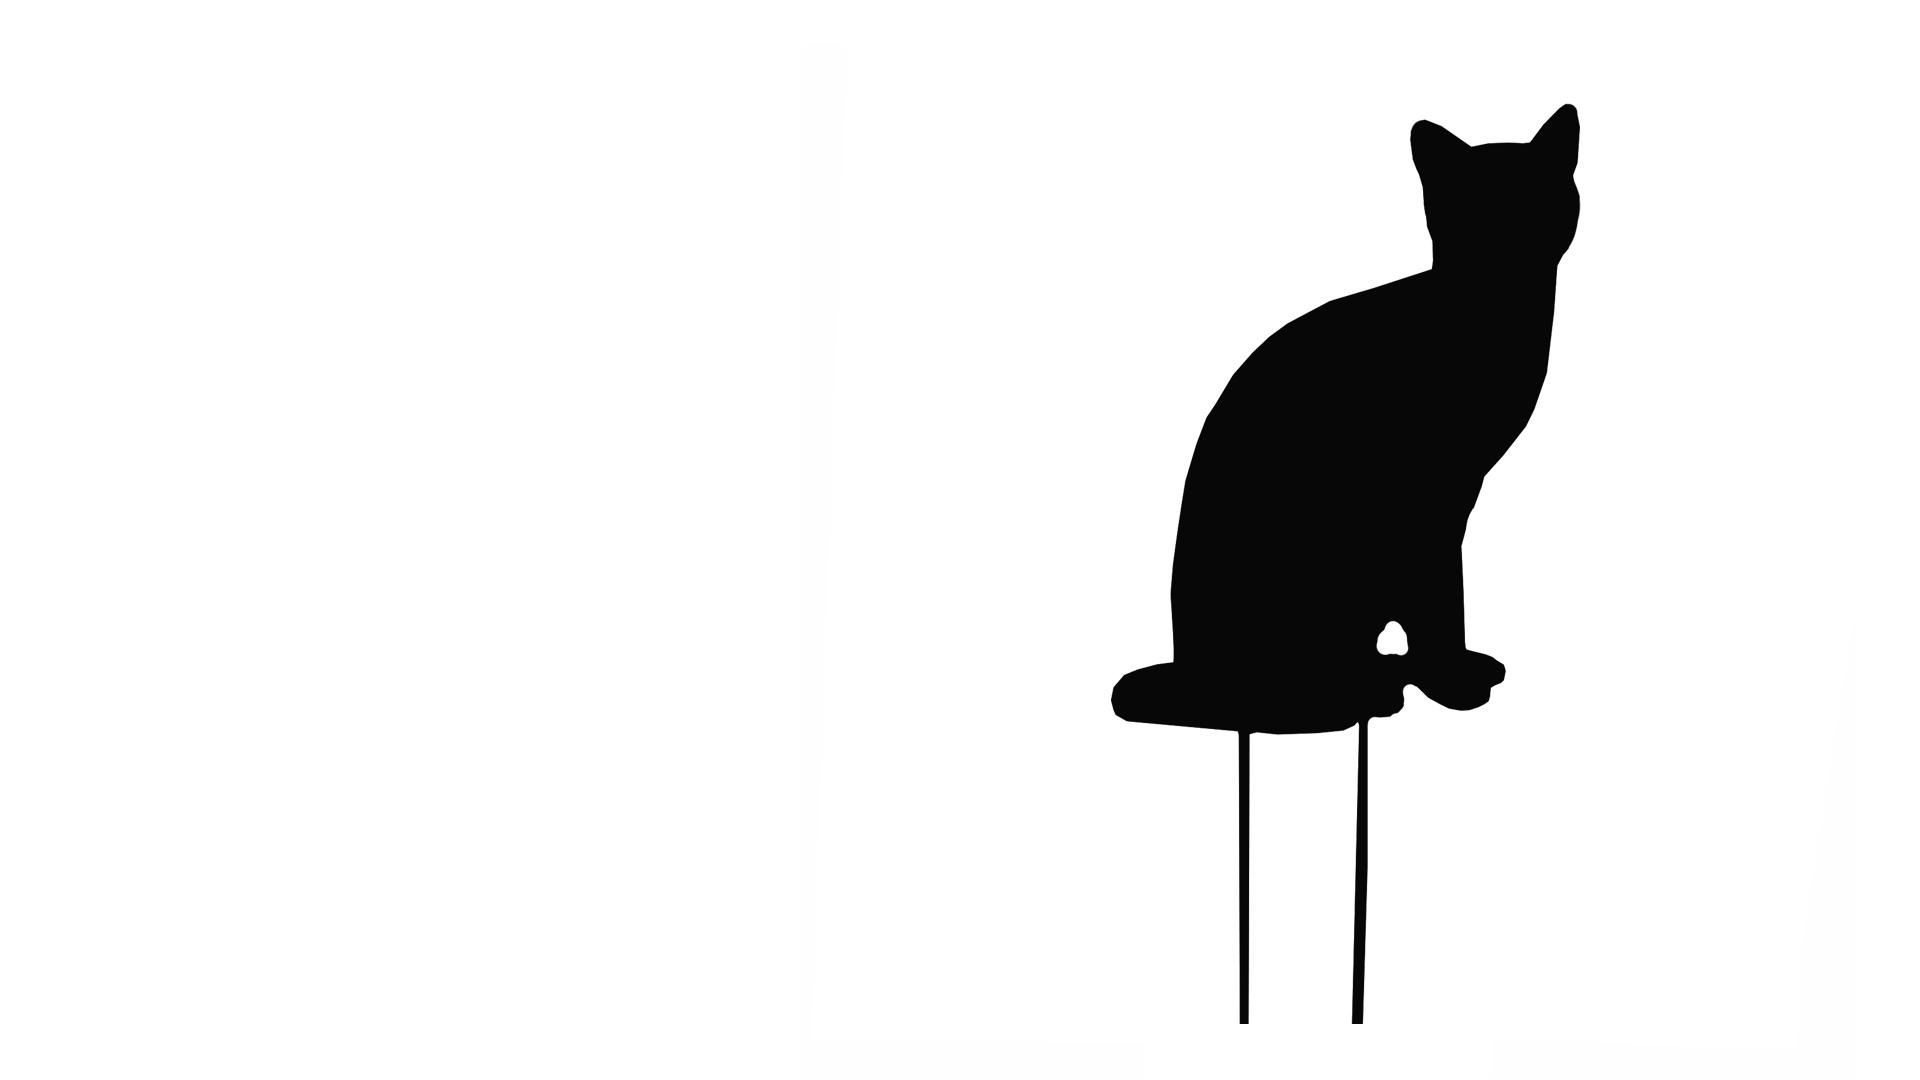 Black Sitting Cat Silhouette - Celebrity Big Brother 2017